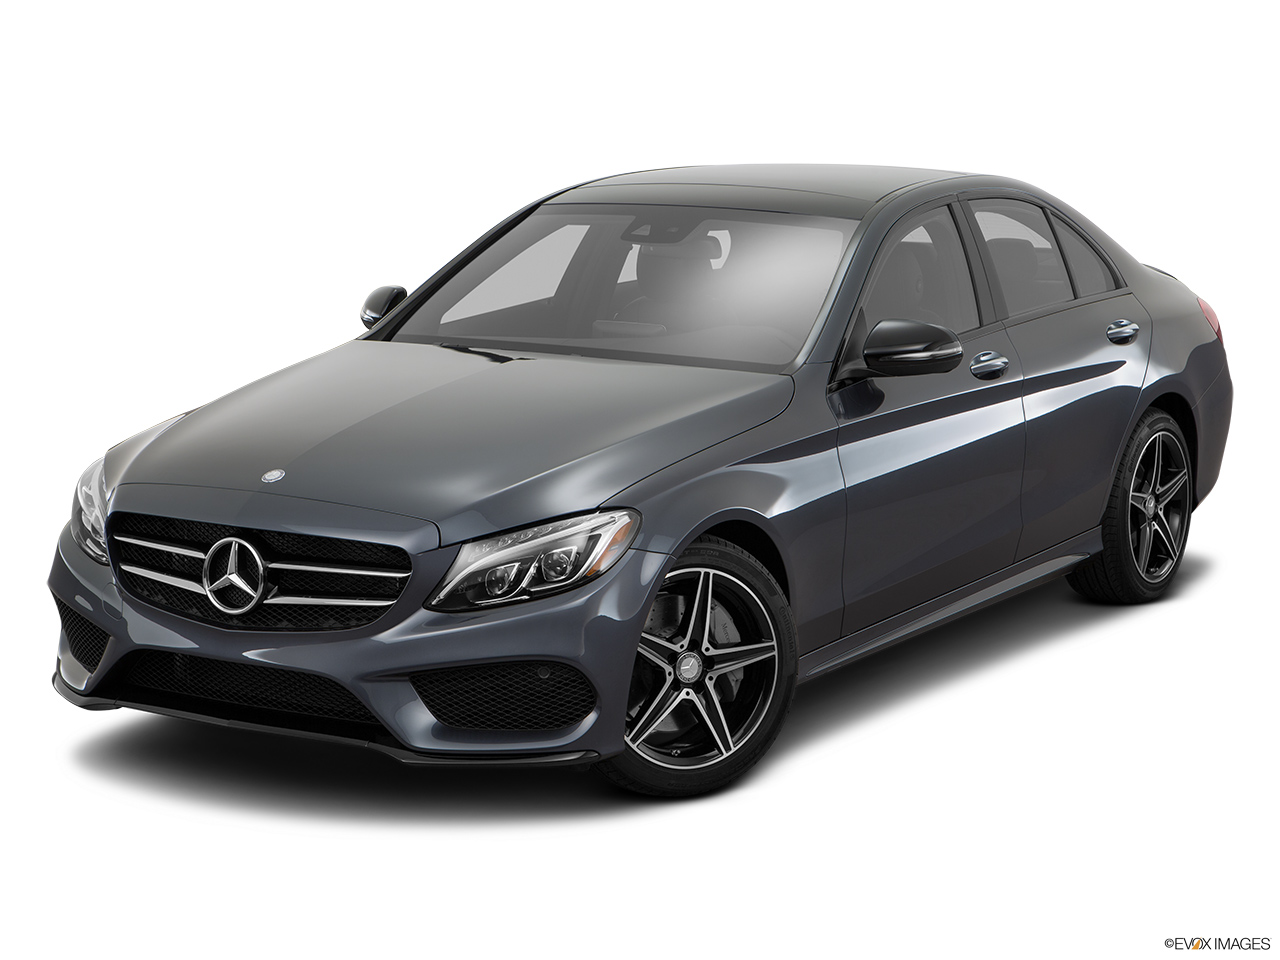 Mercedes benz c class 2016 c 250 in qatar new car prices for 2016 mercedes benz c class dimensions